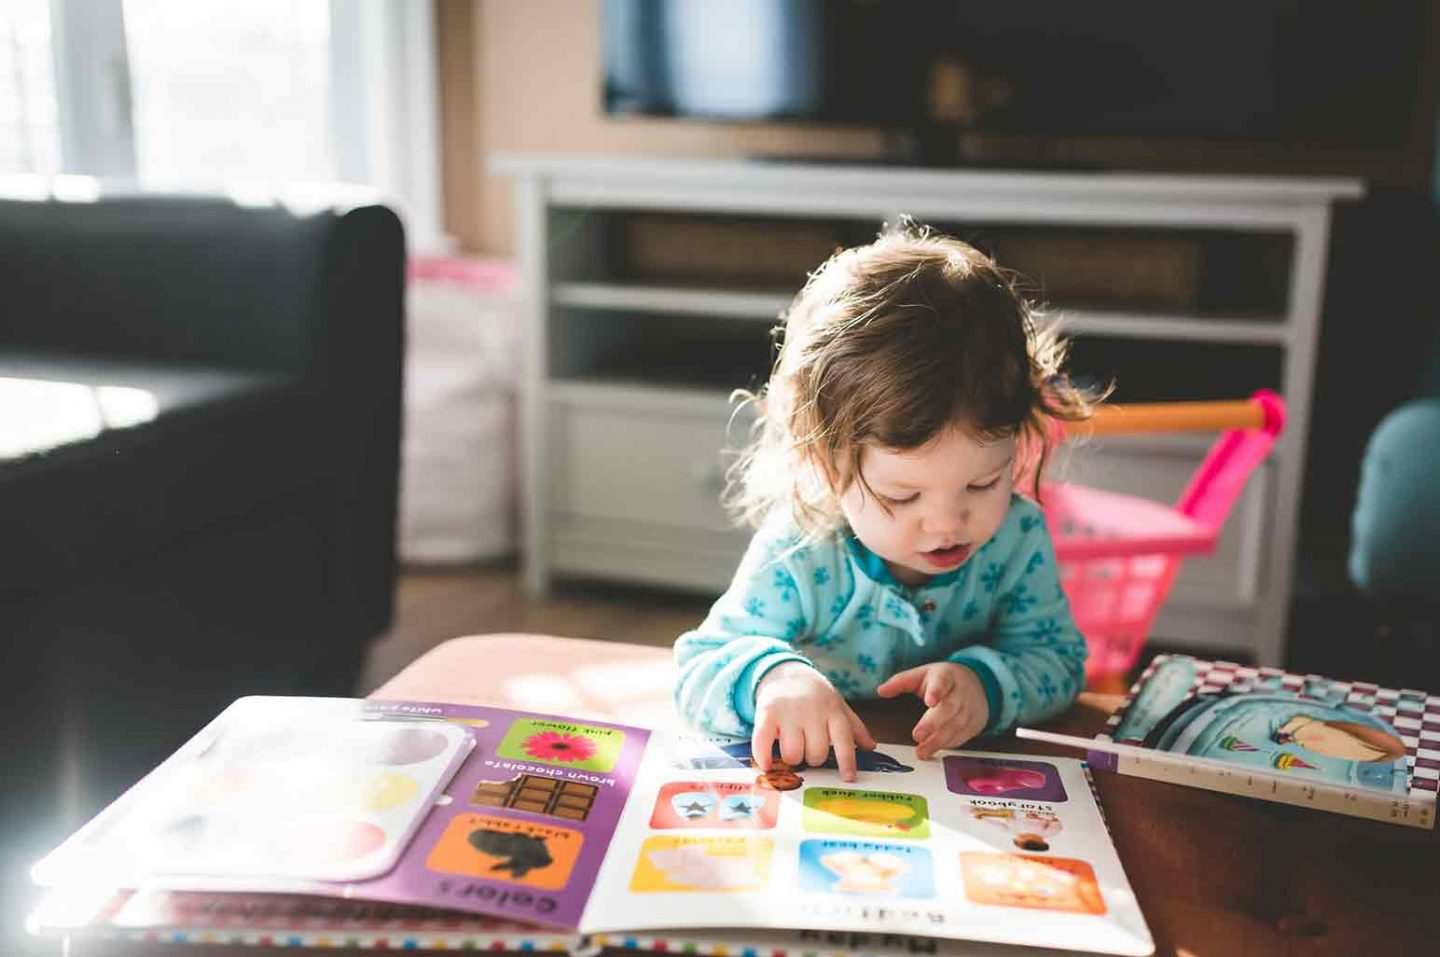 Introducing Your Toddler to Learning: When and How to Do It